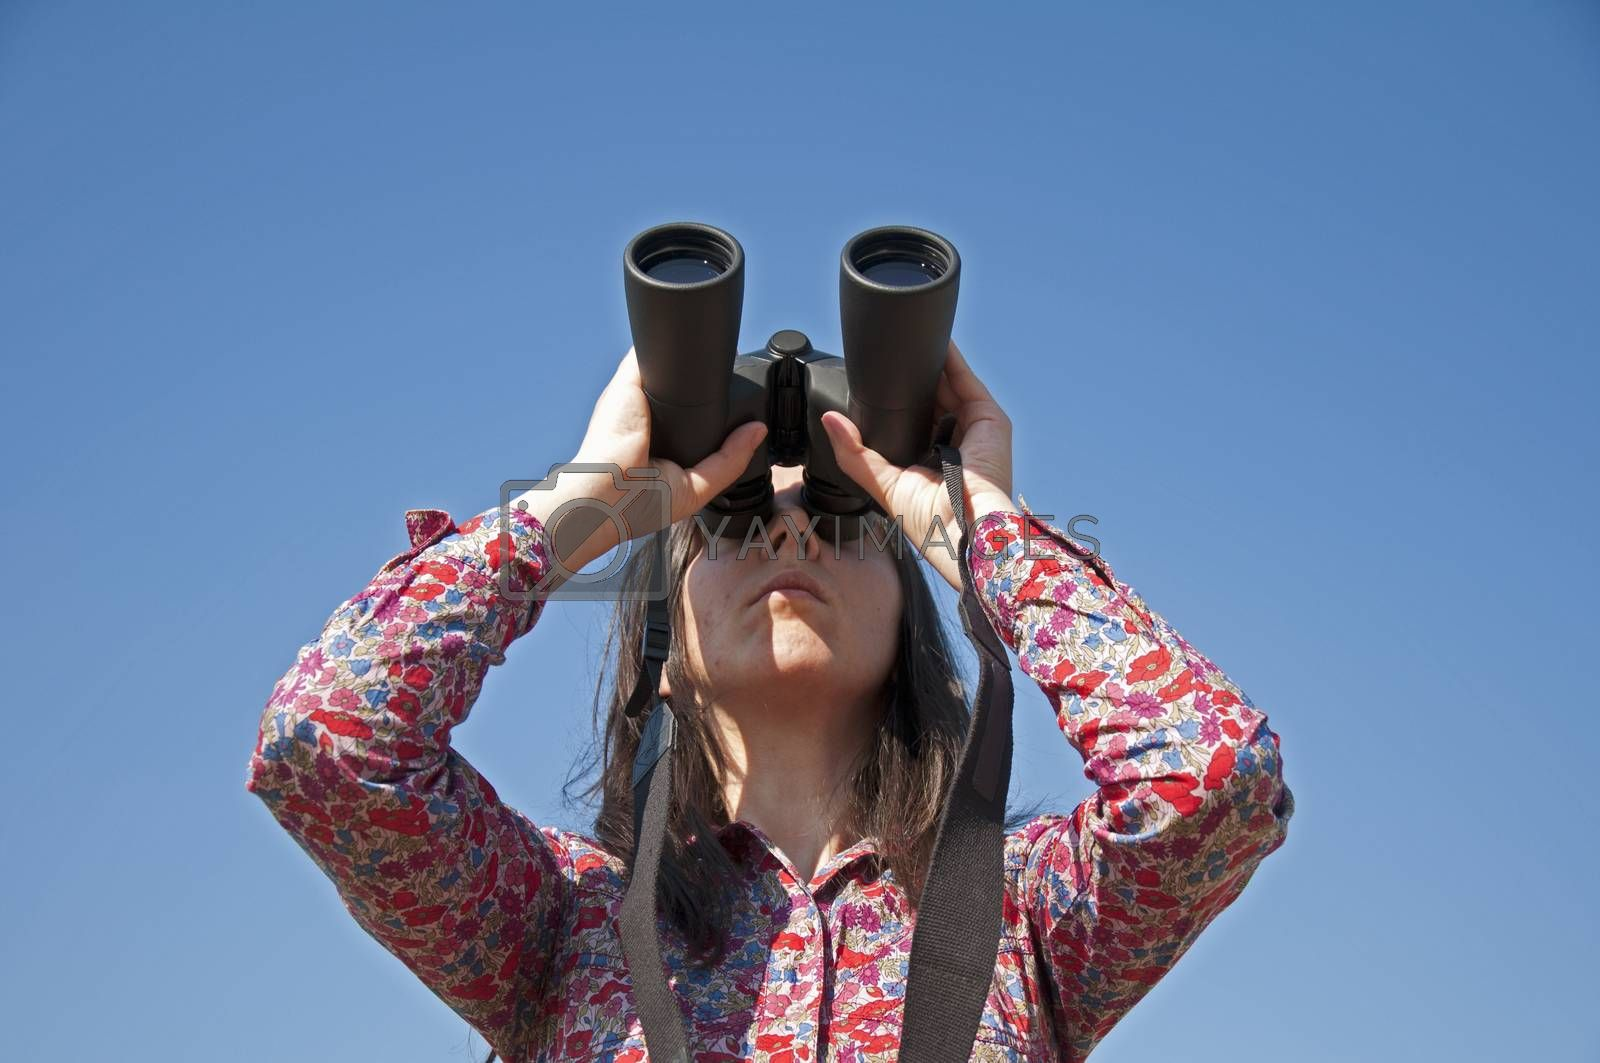 Young woman using binoculars. On blue sky background